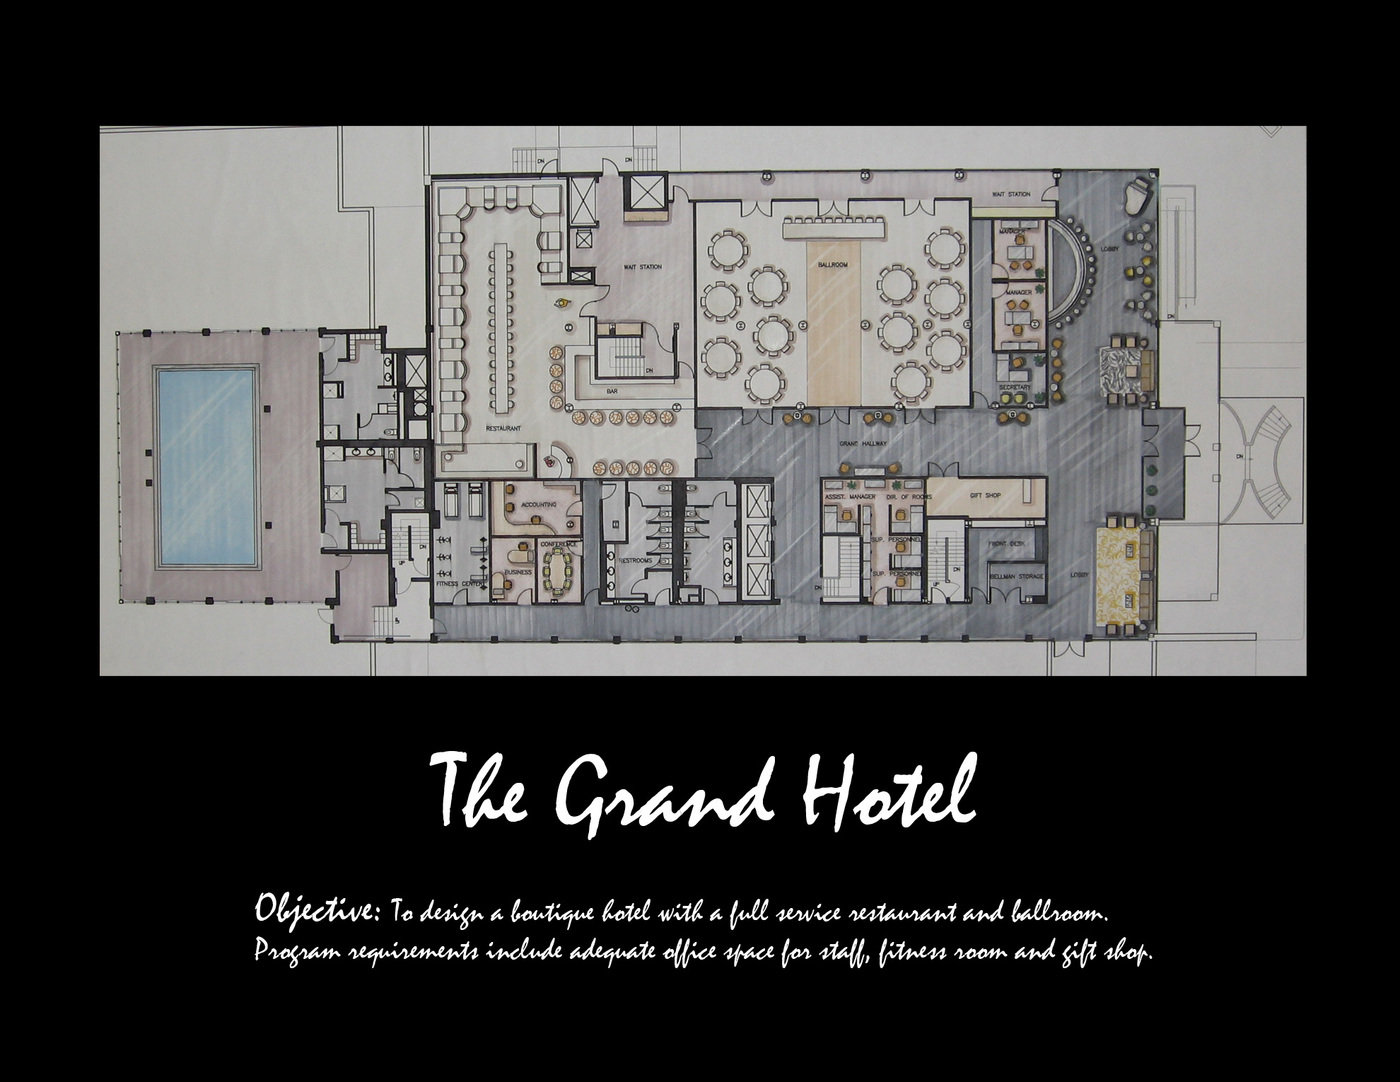 Floor plan a small boutique hotel with ultra chic interiors and eclectic furnishings